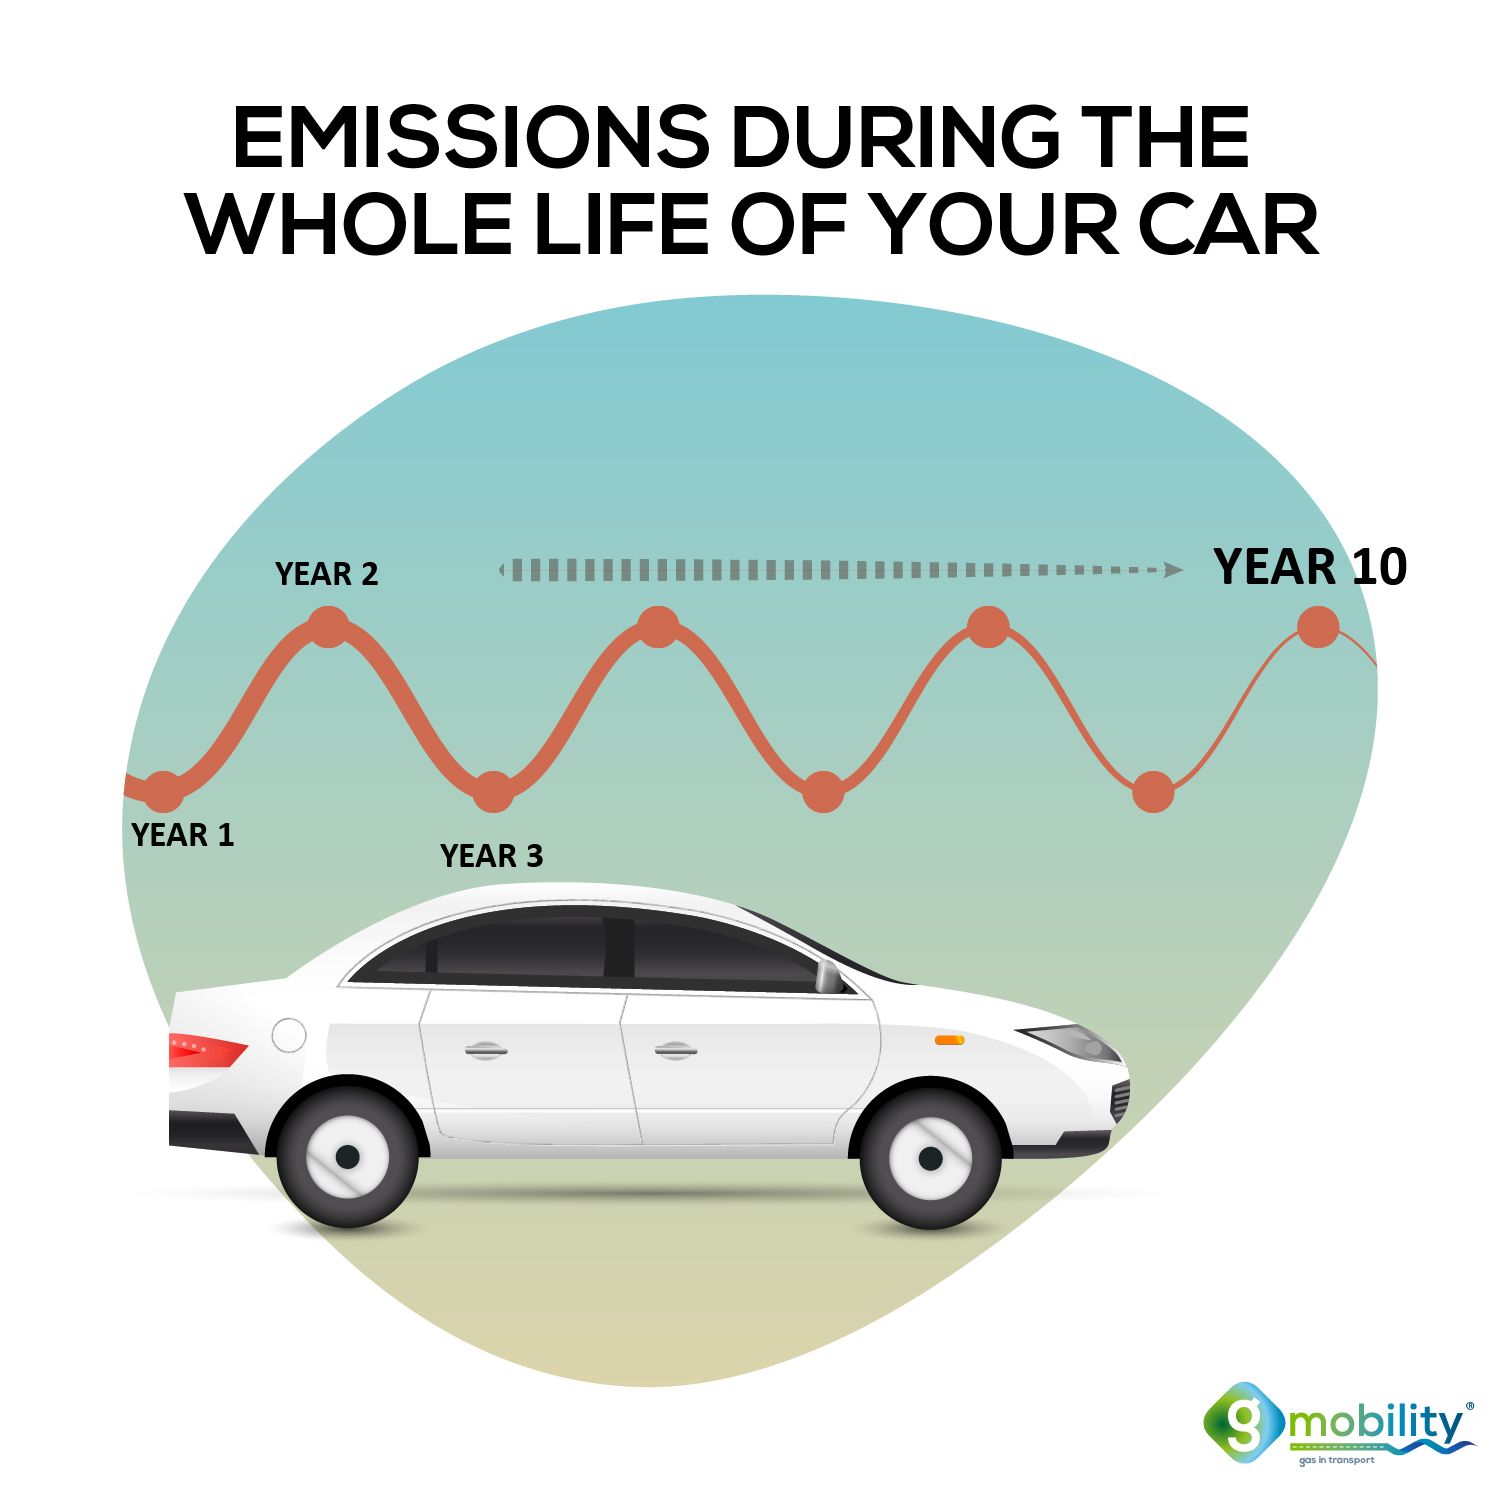 Why is it important to the average life of a vehicle? Emissions during the whole life of the car should be measured and compared.